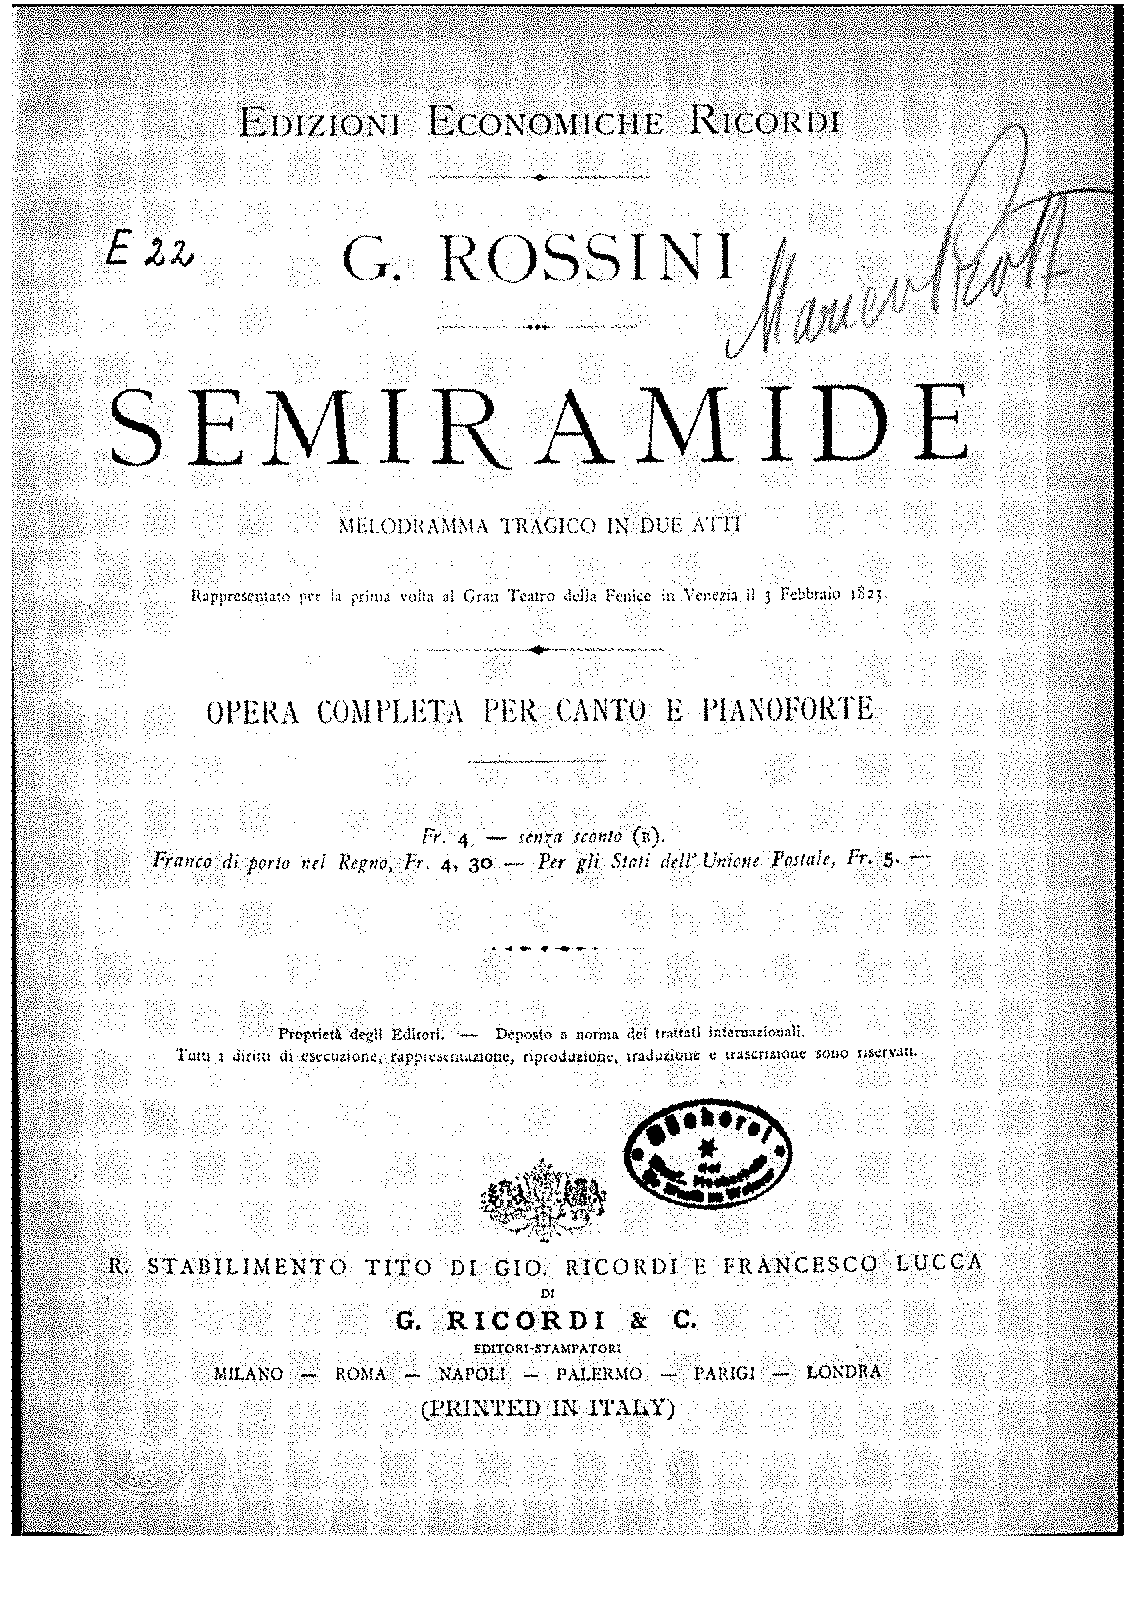 PMLP48525-Rossini - Semiramide (vs Ricordi).pdf